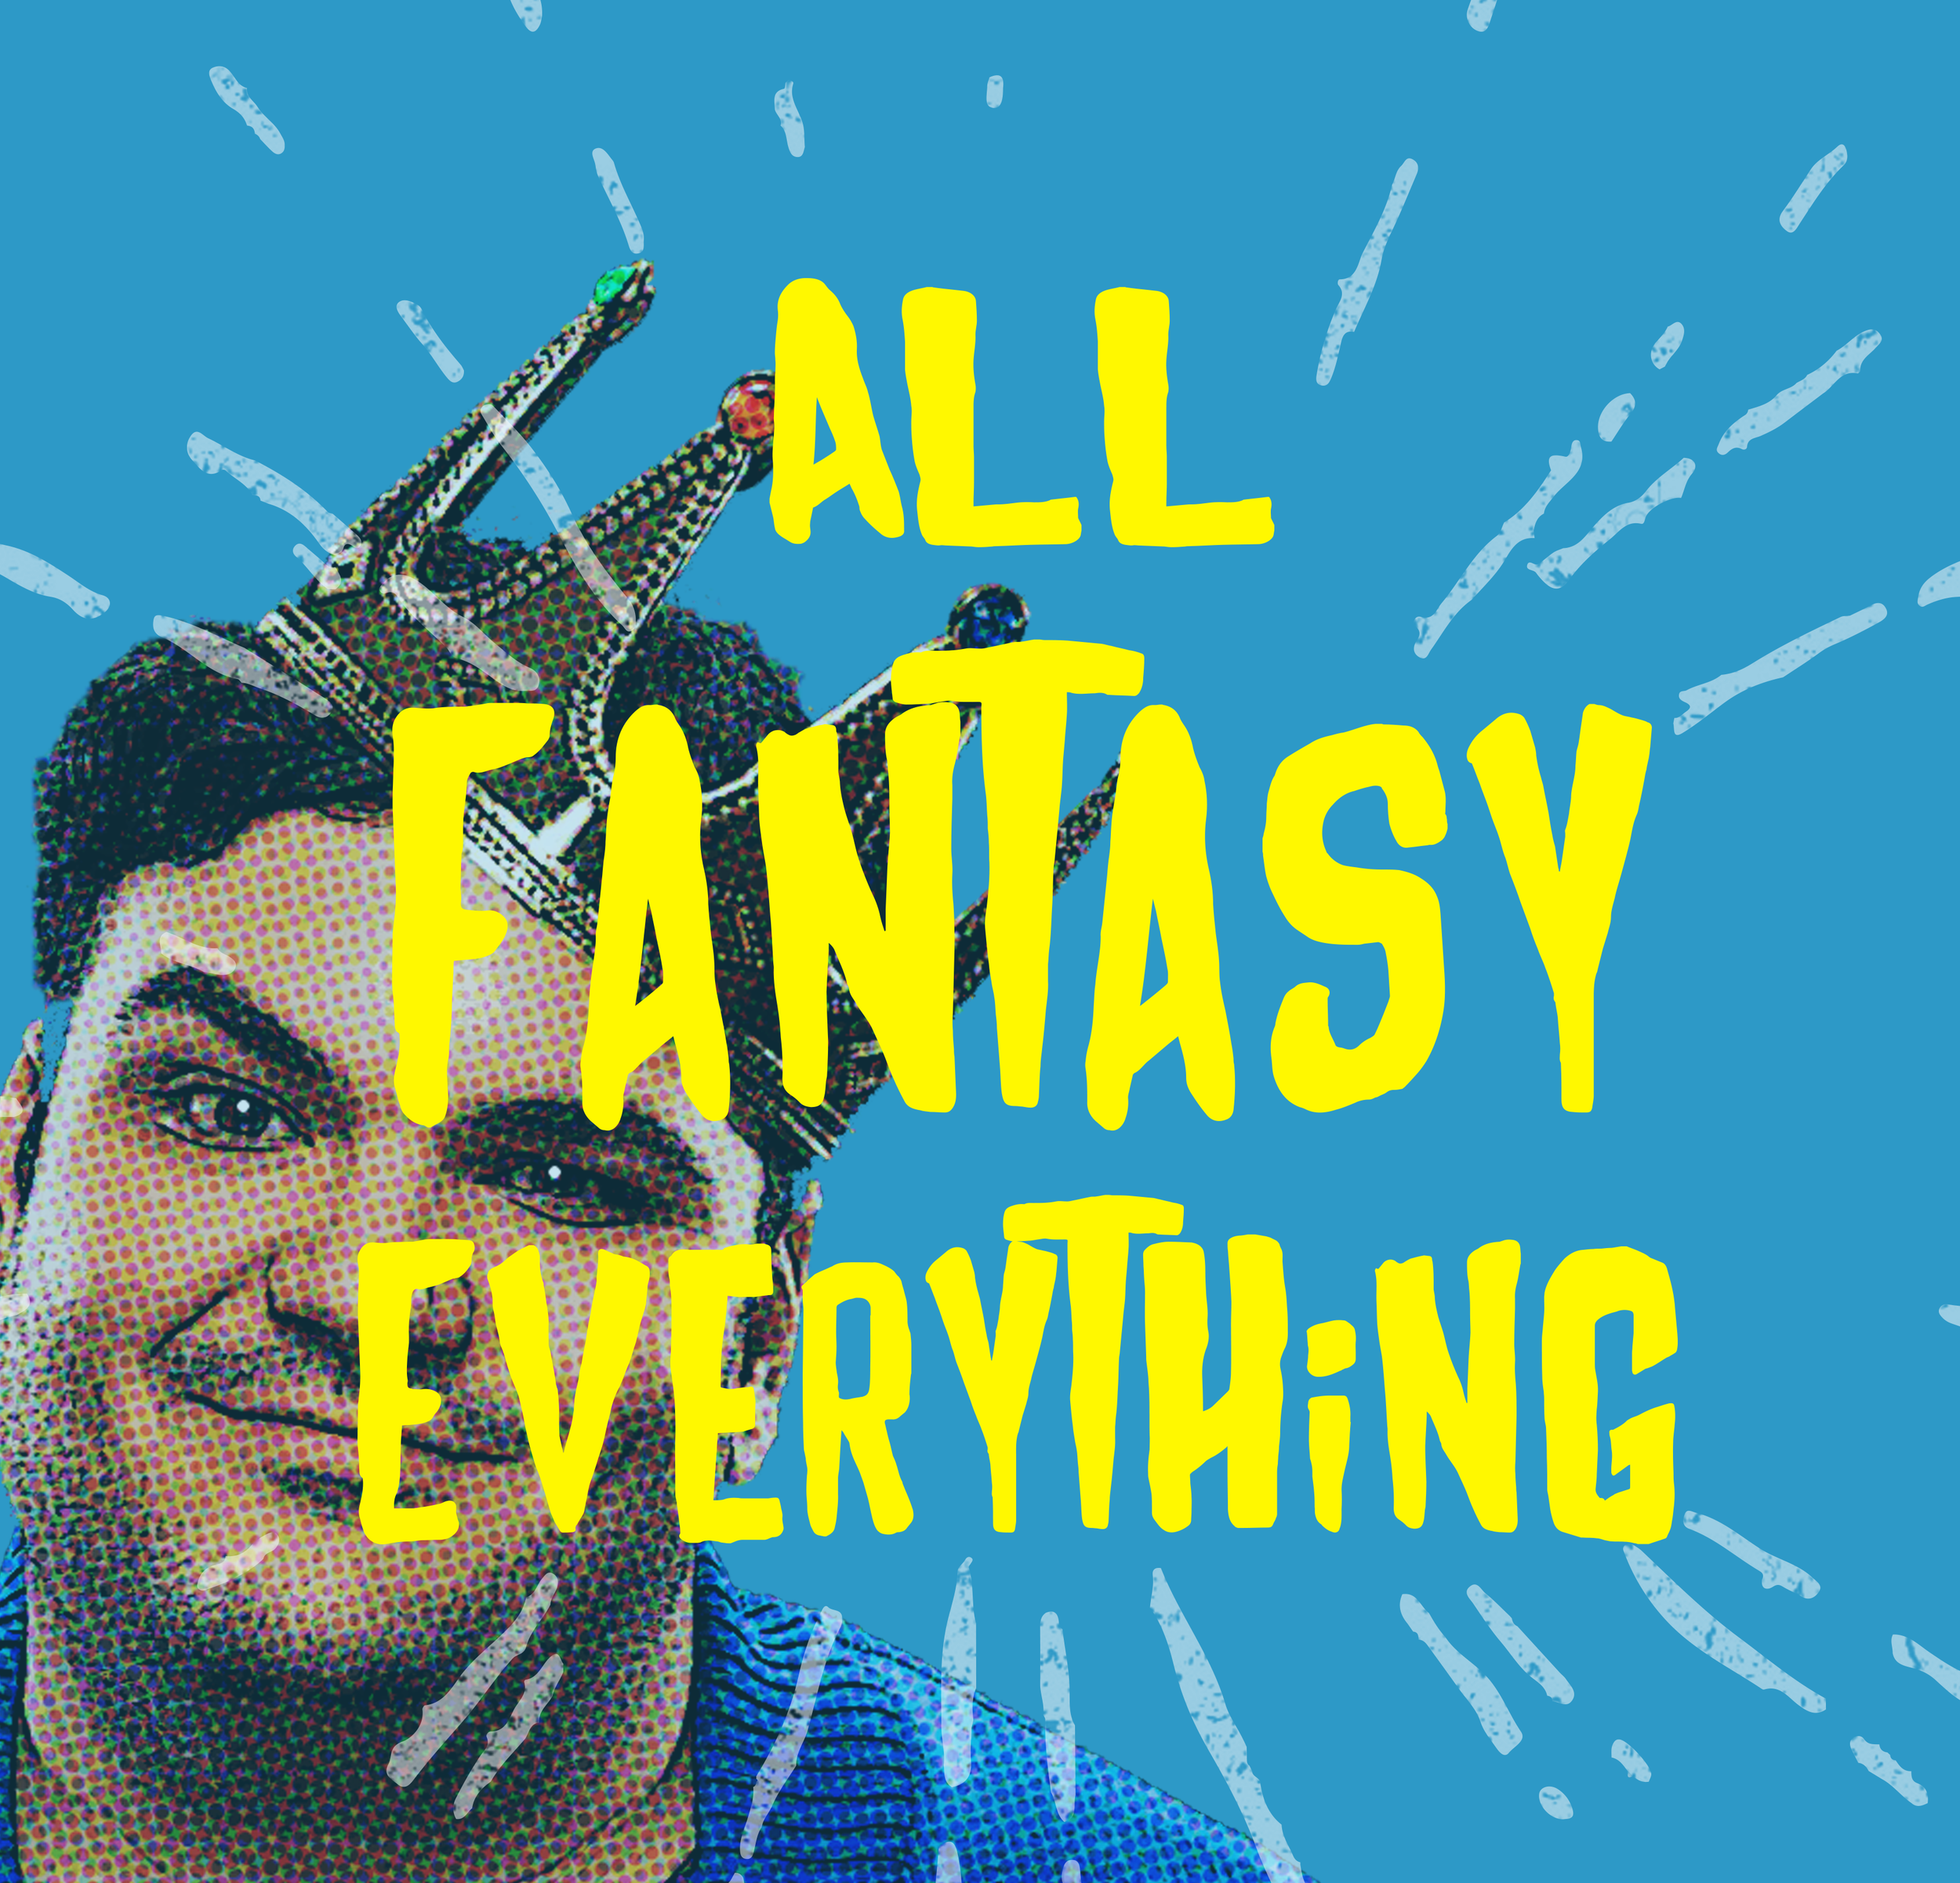 All Fantasy Everything Podcast